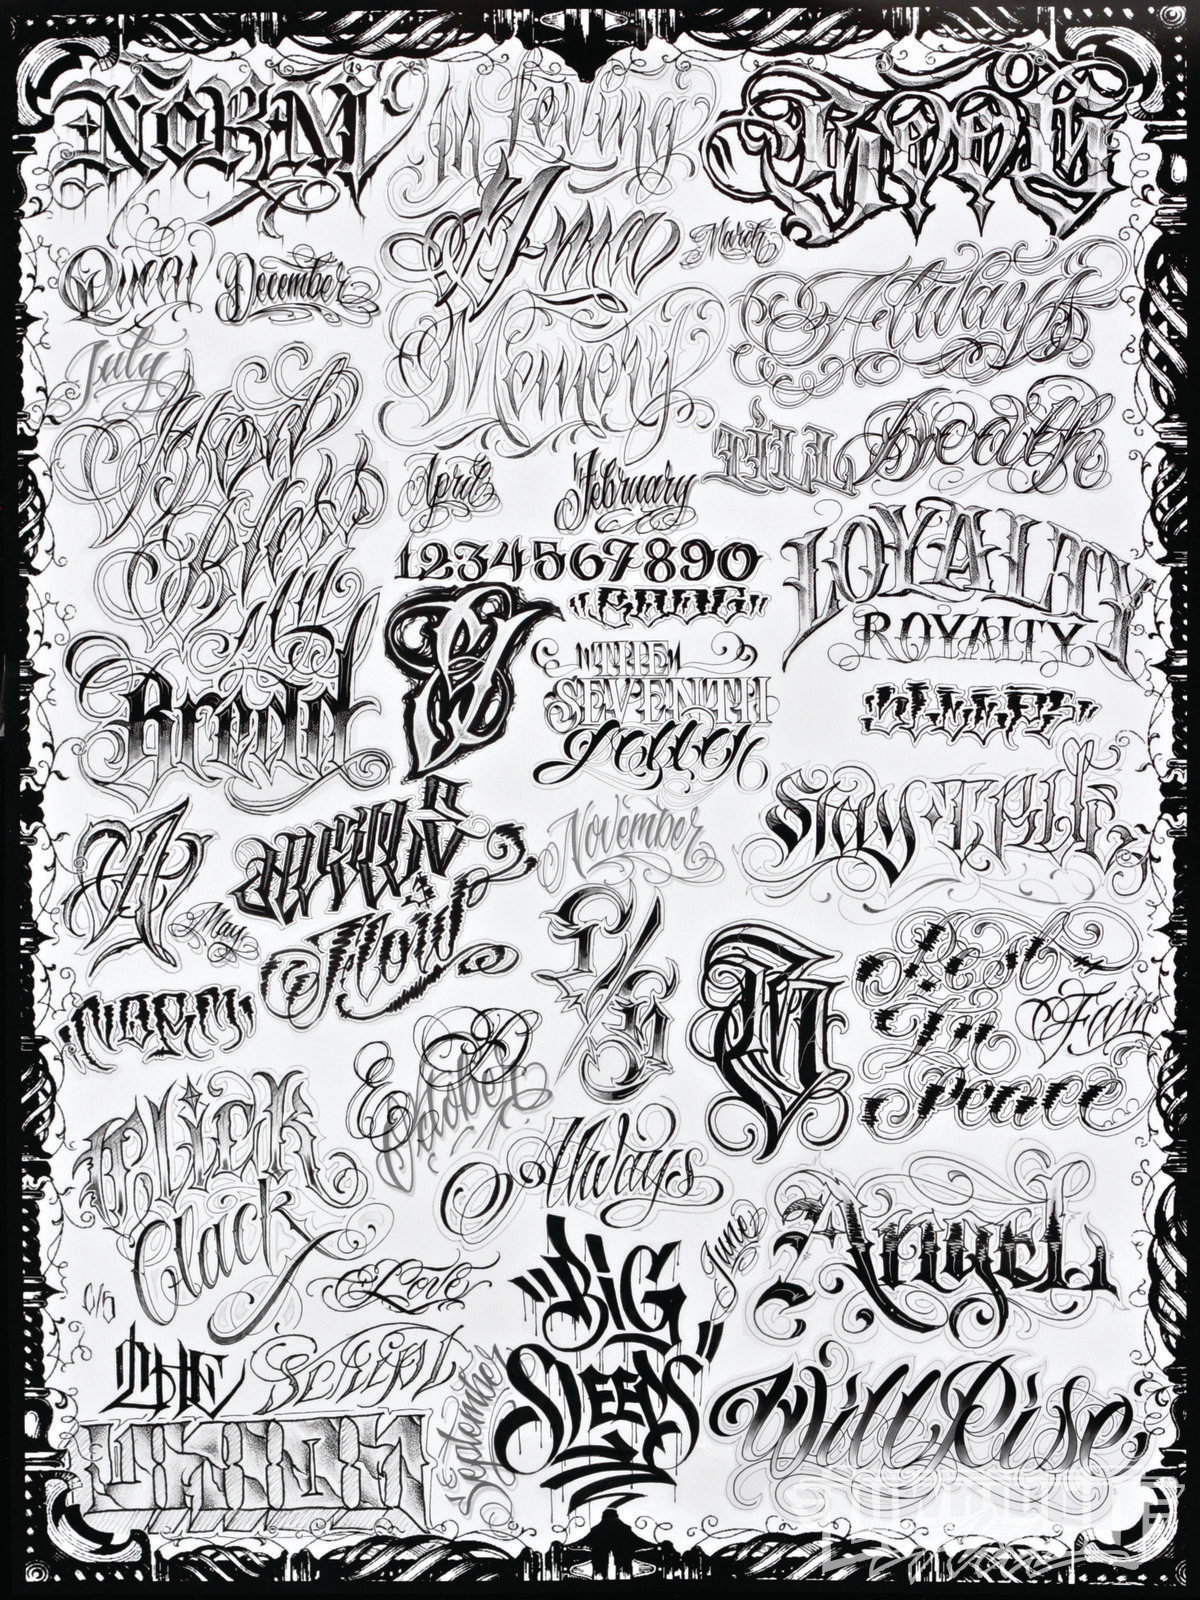 tattoo lettering alphabet norm feature artist lowrider arte magazine 12750 | 1305 lras 20 o norm tattoo and graffiti tattoo art